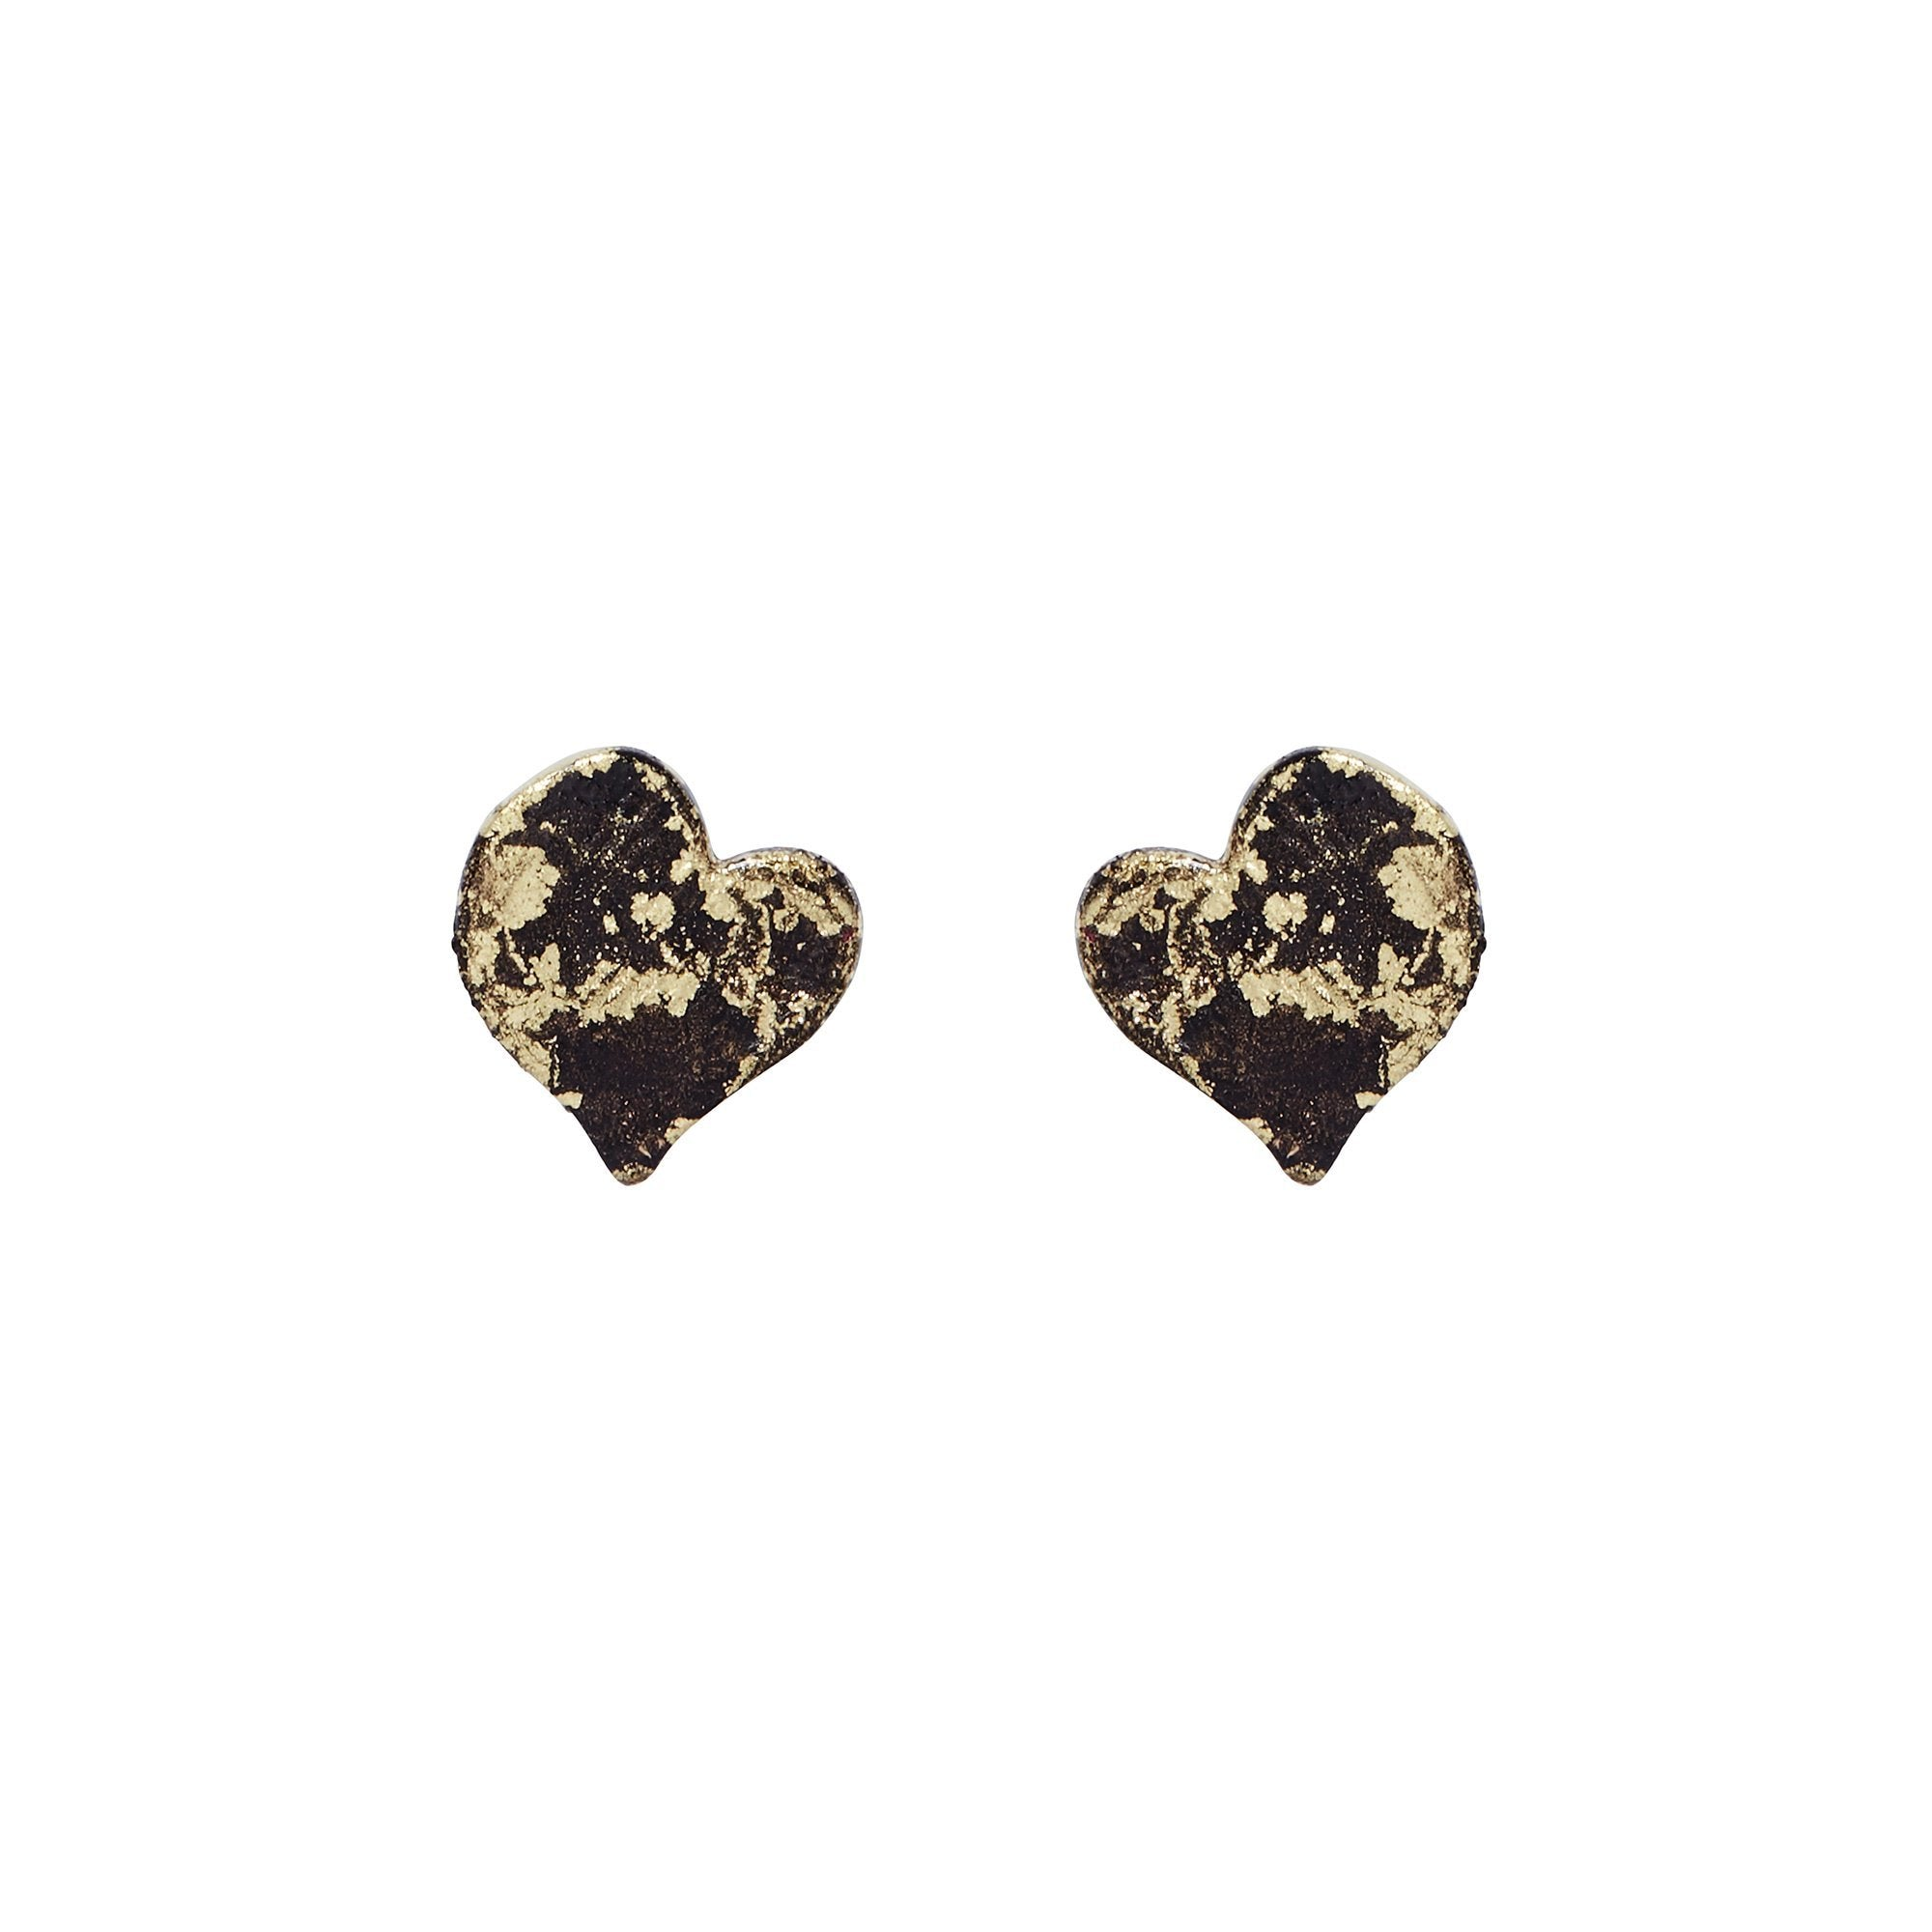 Gold Micro Heart Stud Earrings - Available in more colors